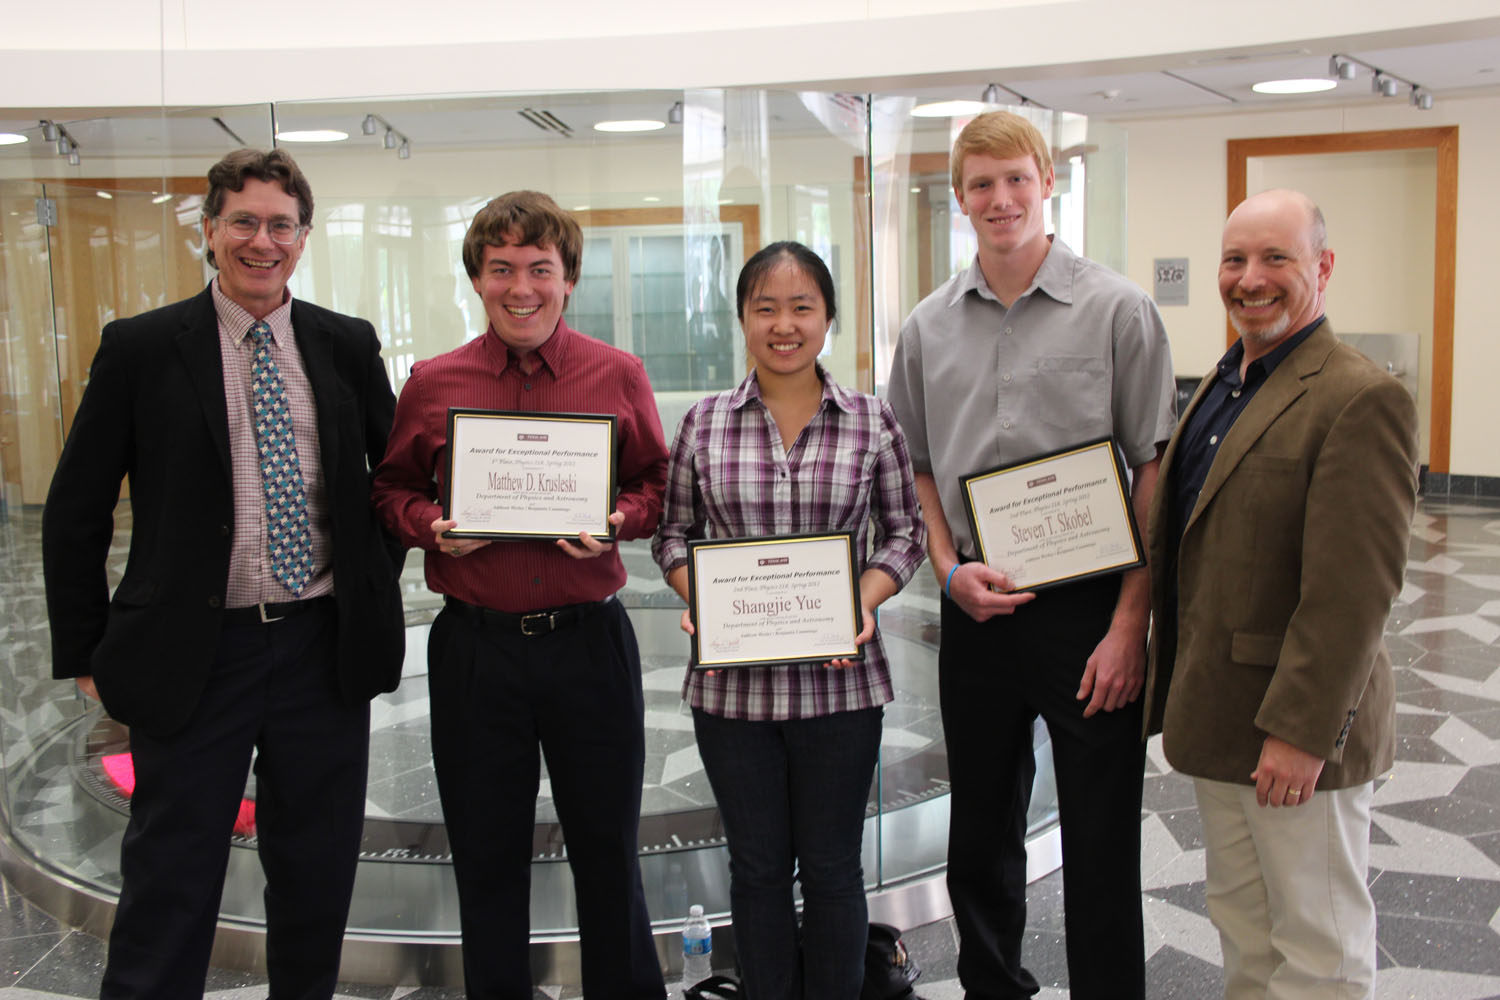 Three science students hold framed awards alongside two physics professors